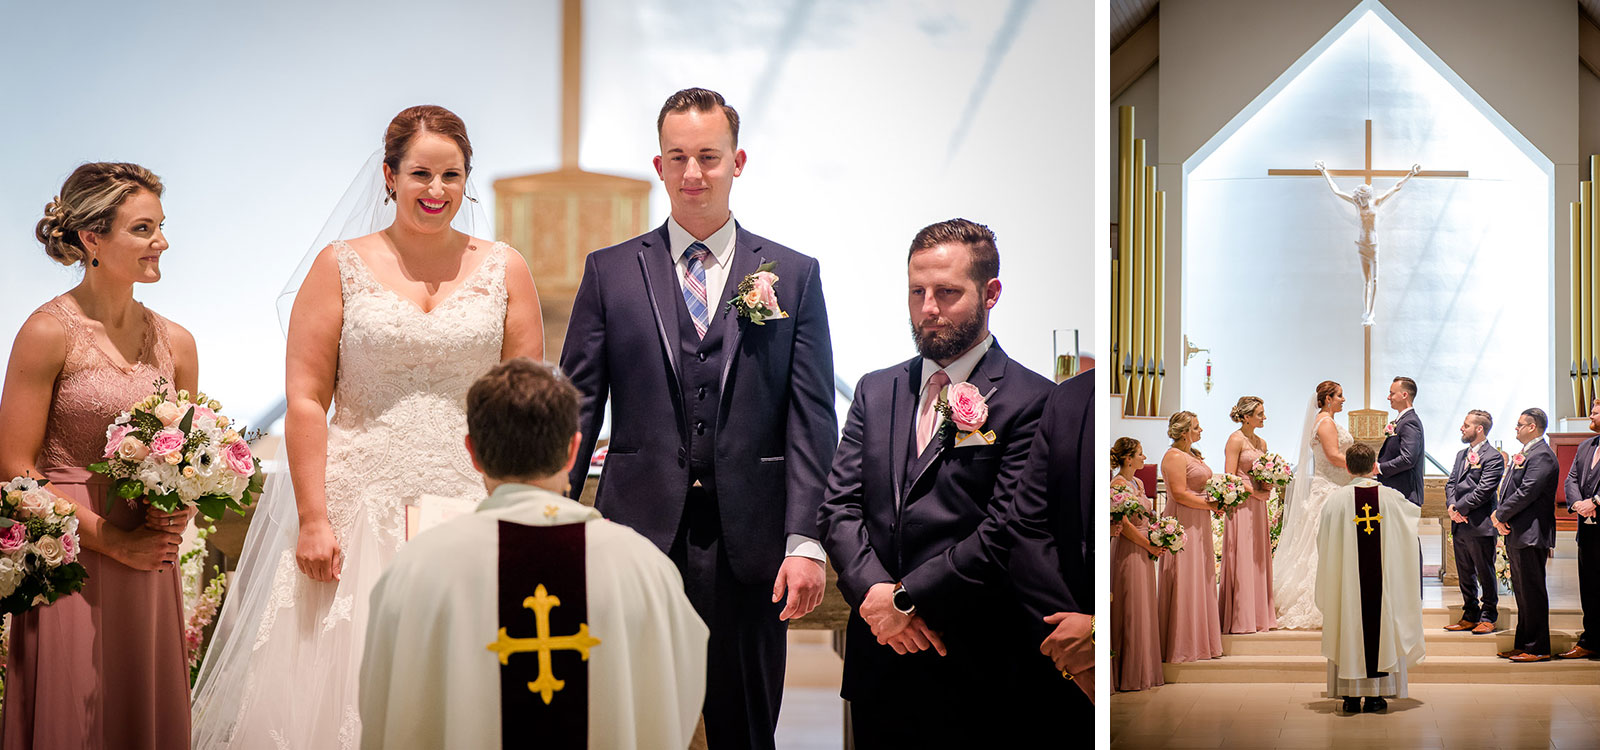 Eric_and_Christy_Photography_Blog_Wedding_Paige_Eric-13-14